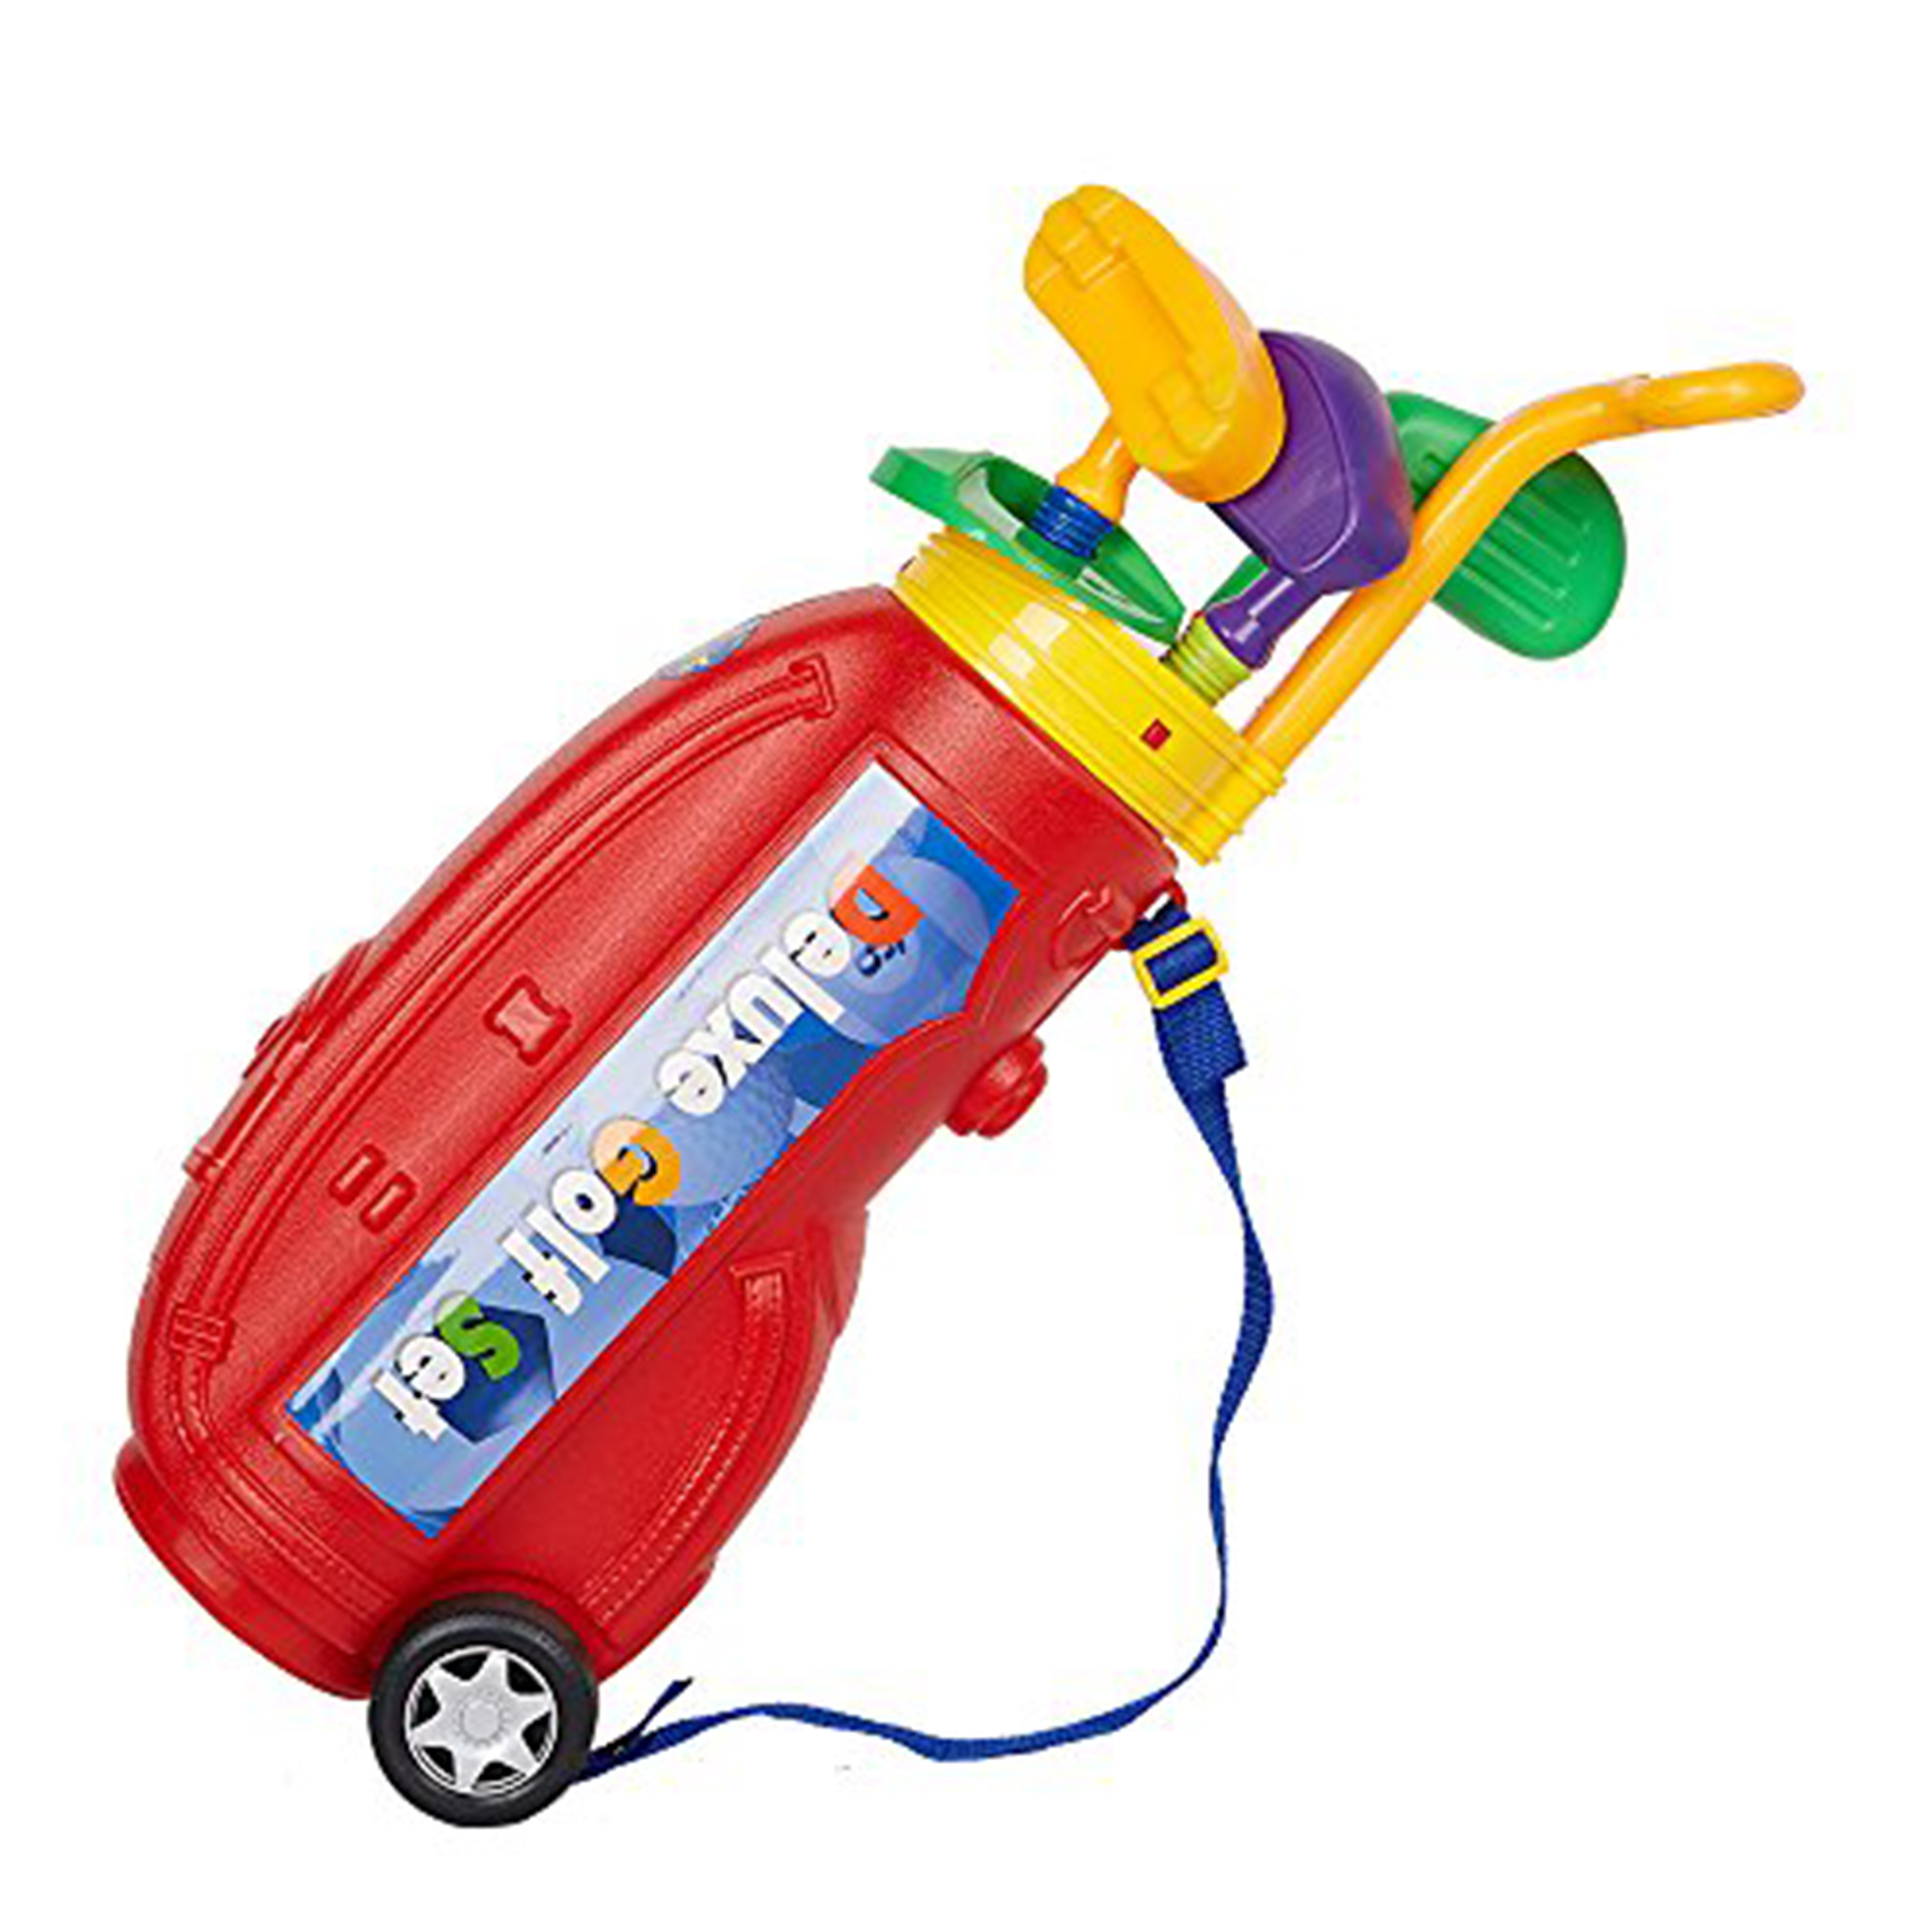 KARMAS PRODUCT Easy Hit Toy Golf Set Children Sport Golf Cart by KARMAS PRODUCT